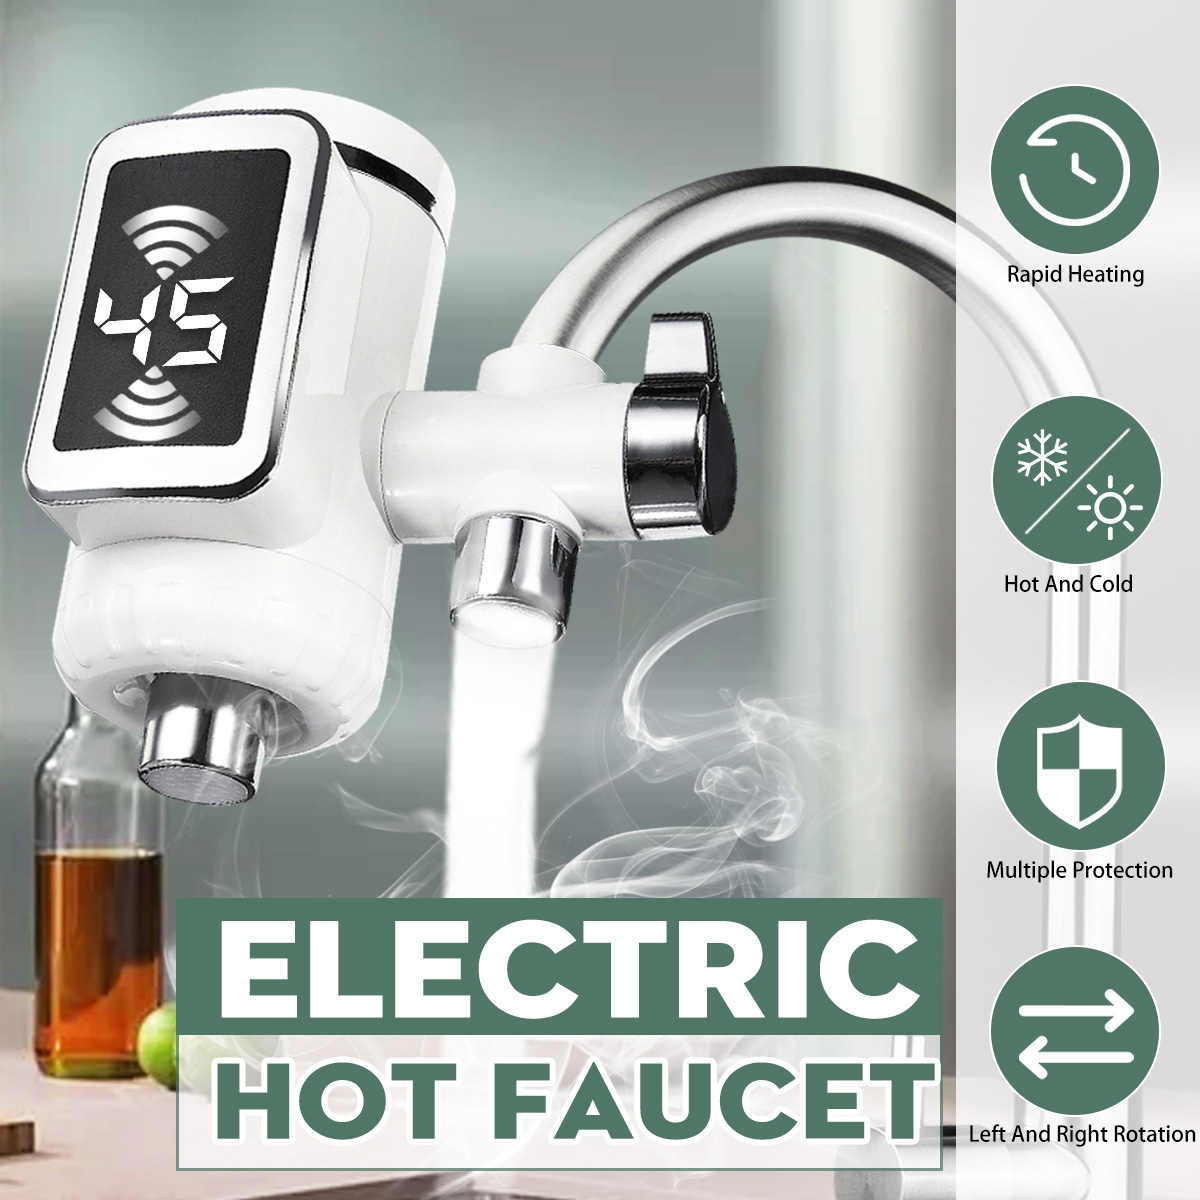 220V Electric Faucet 3000W LCD Digital Display Kitchen Faucet 3s Instantaneous Heating Water Heater Cold Hot Water Tap